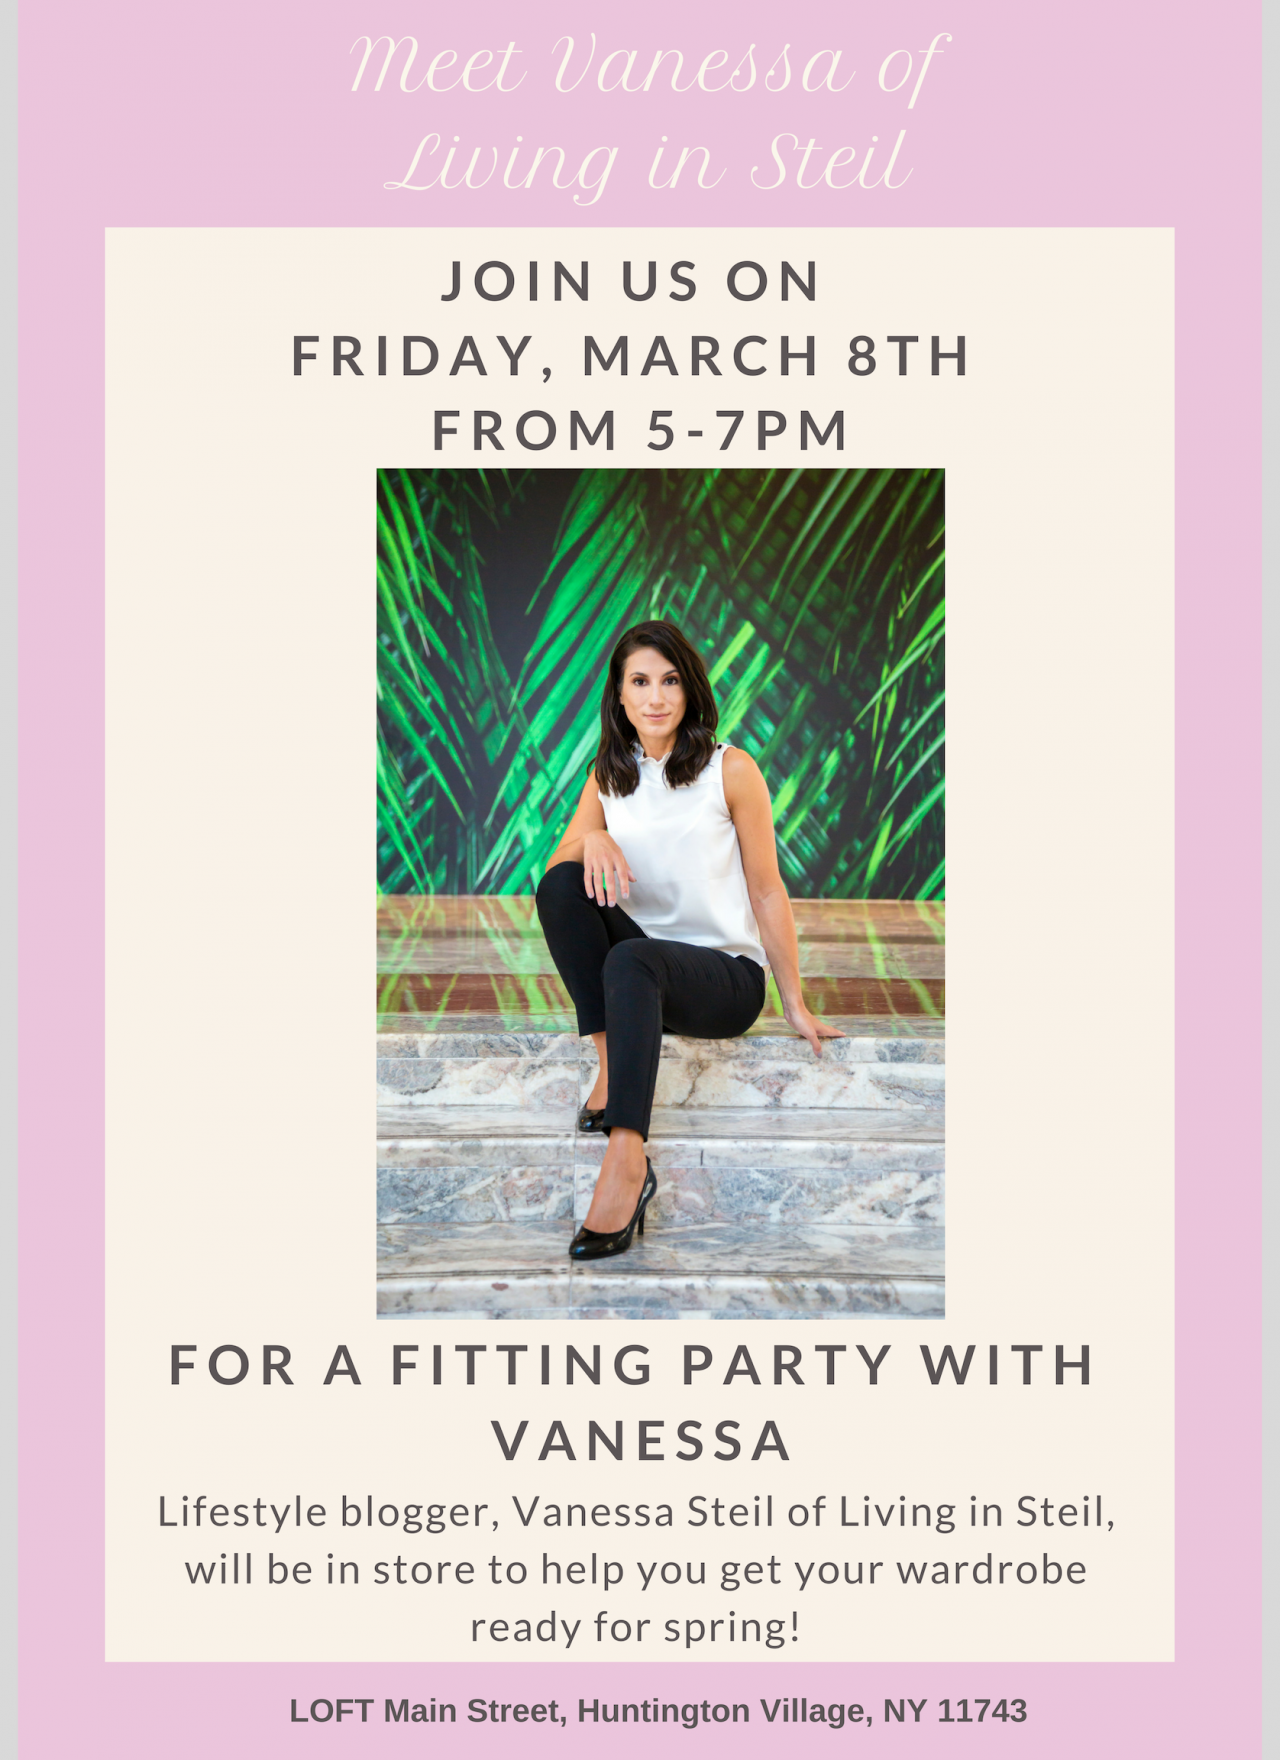 Shop with Me at LOFT on March 8th!